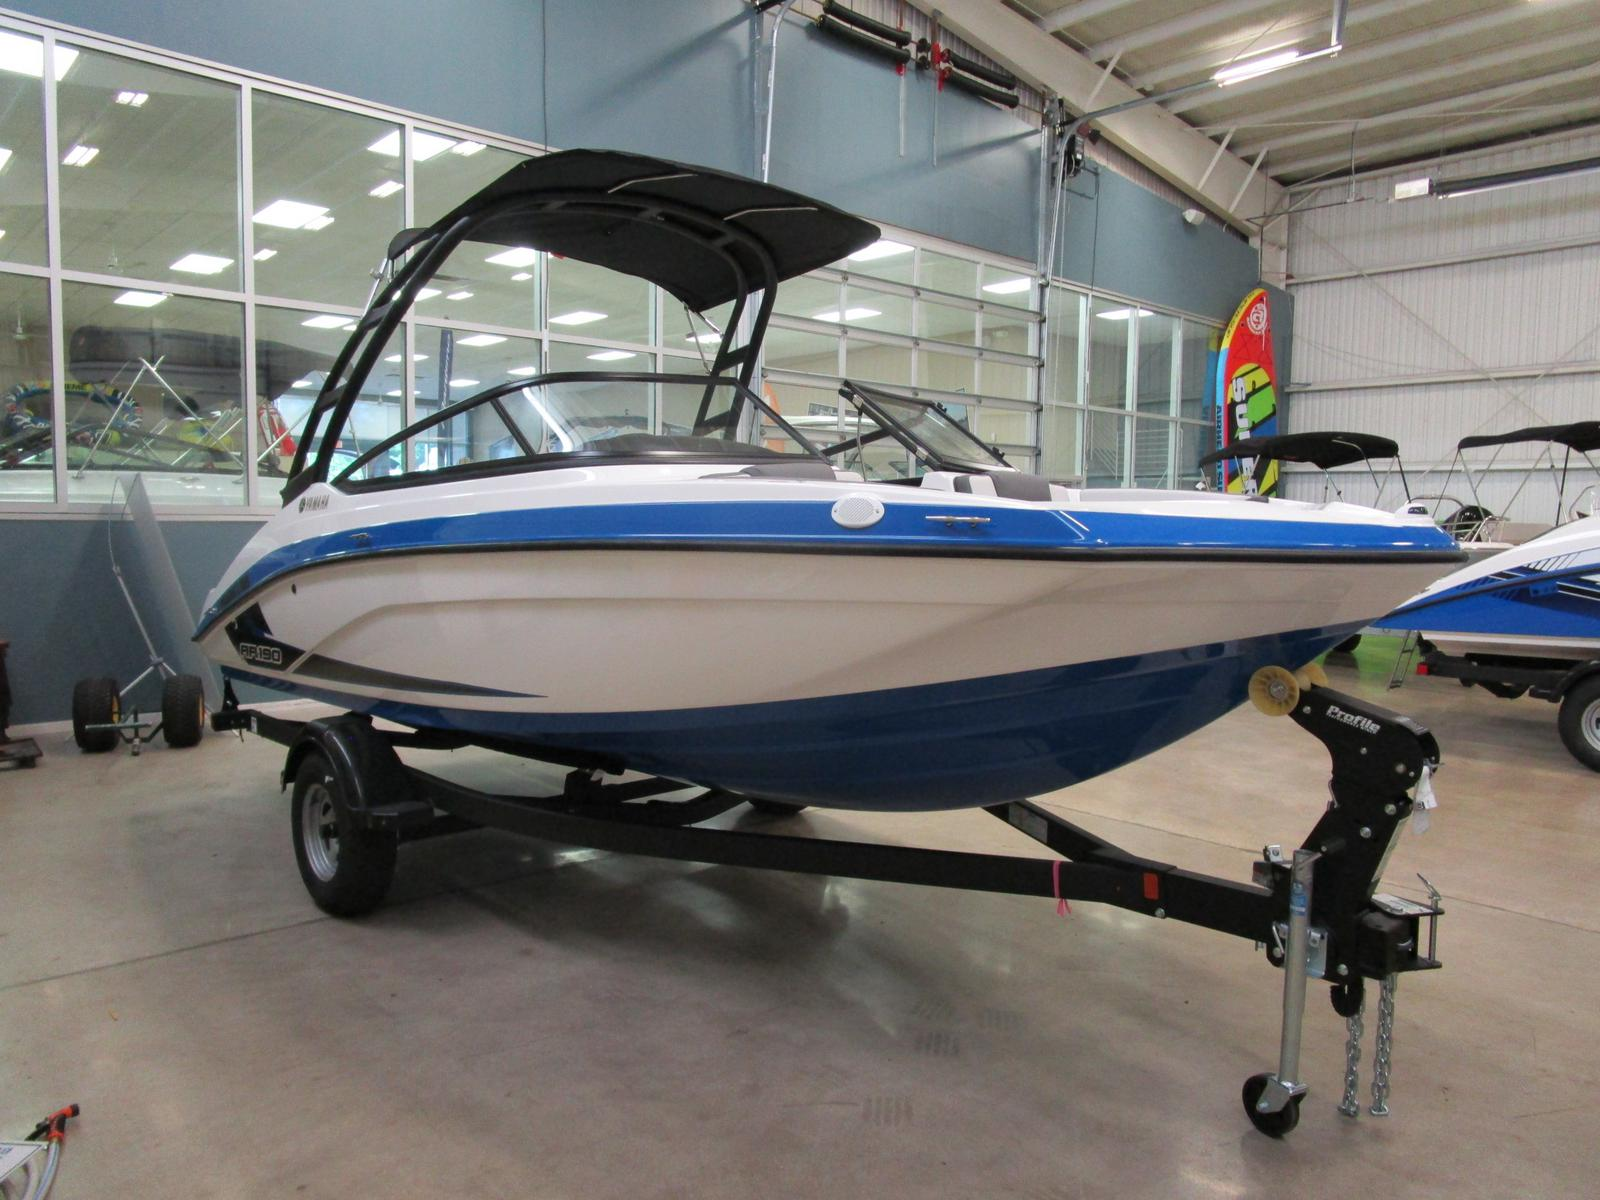 2019 Yamaha boat for sale, model of the boat is AR190 & Image # 2 of 6